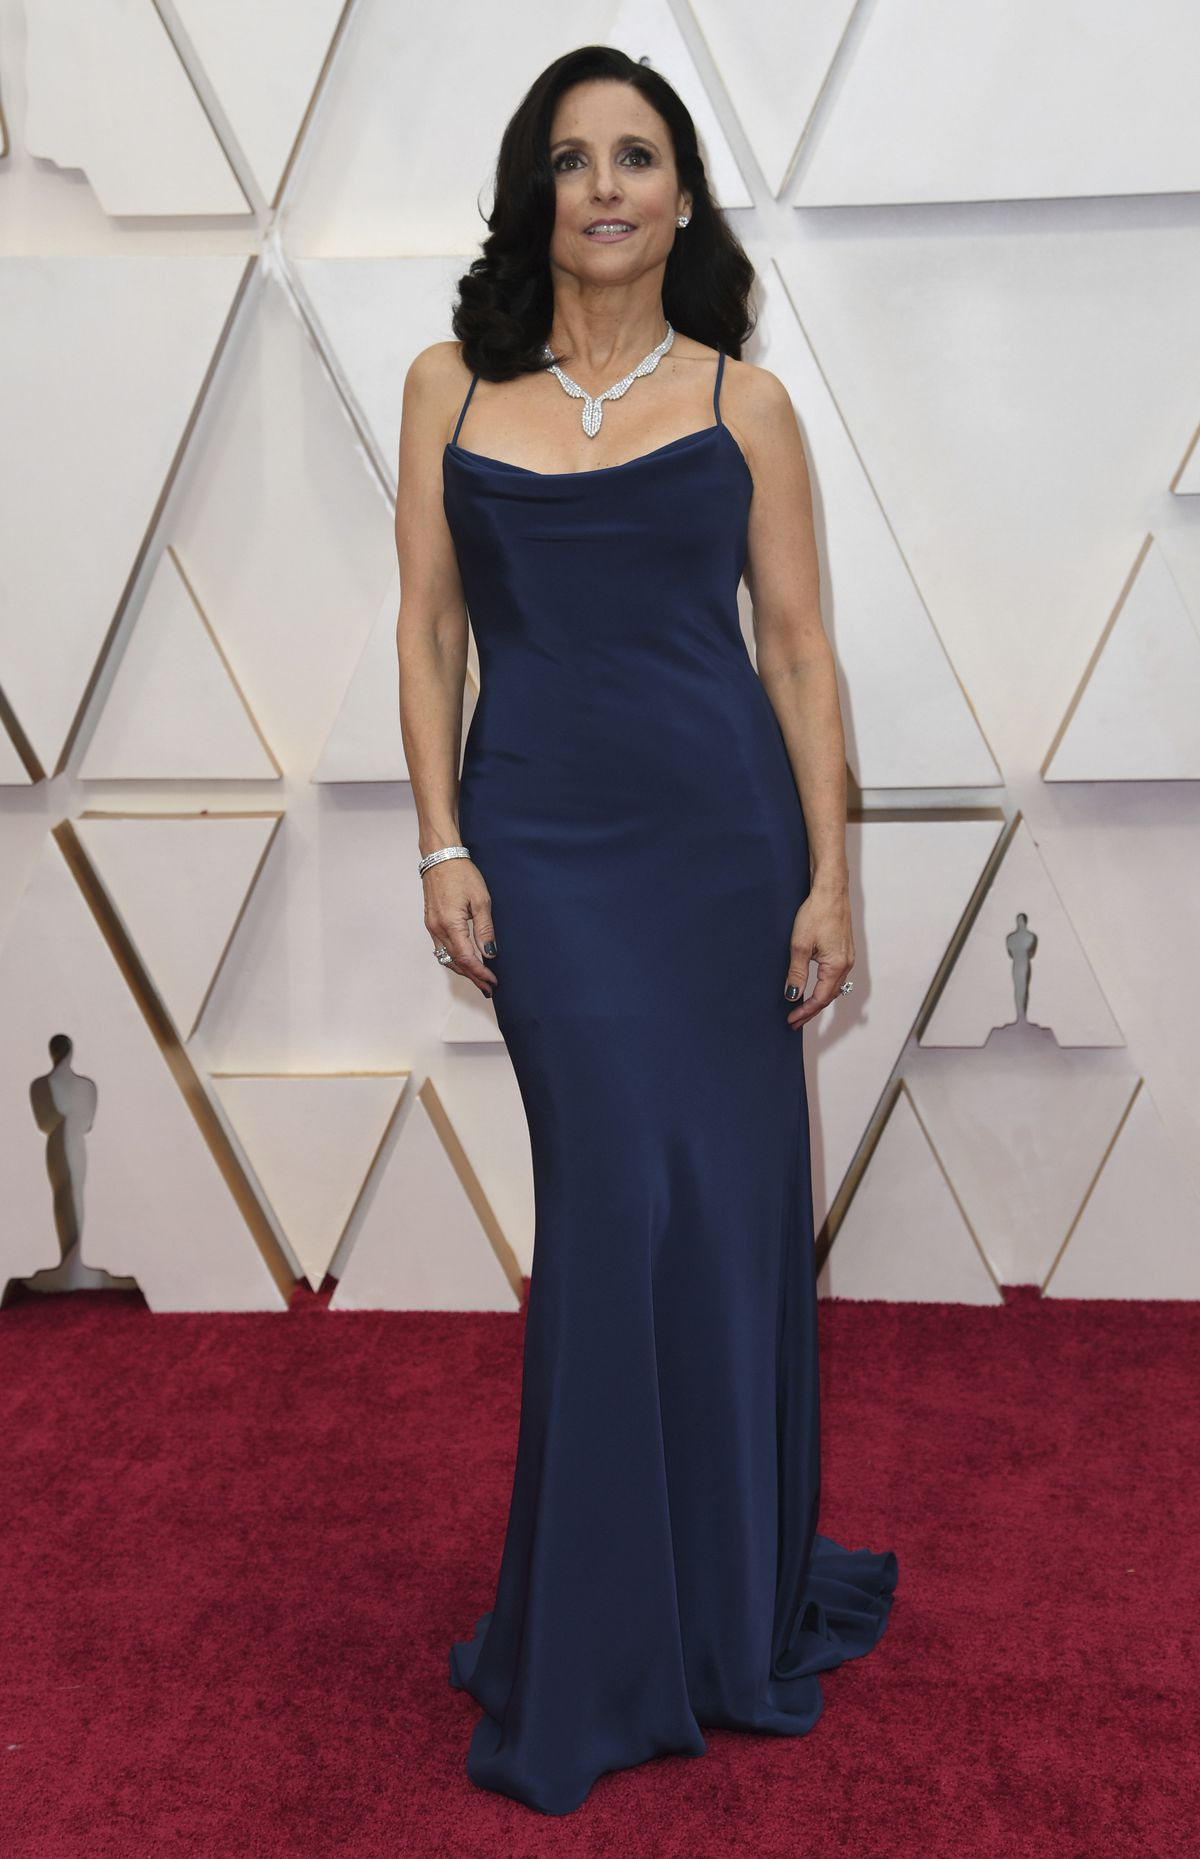 Julia Louis-Dreyfus wears Vera Wang couture on the Oscars red carpet.